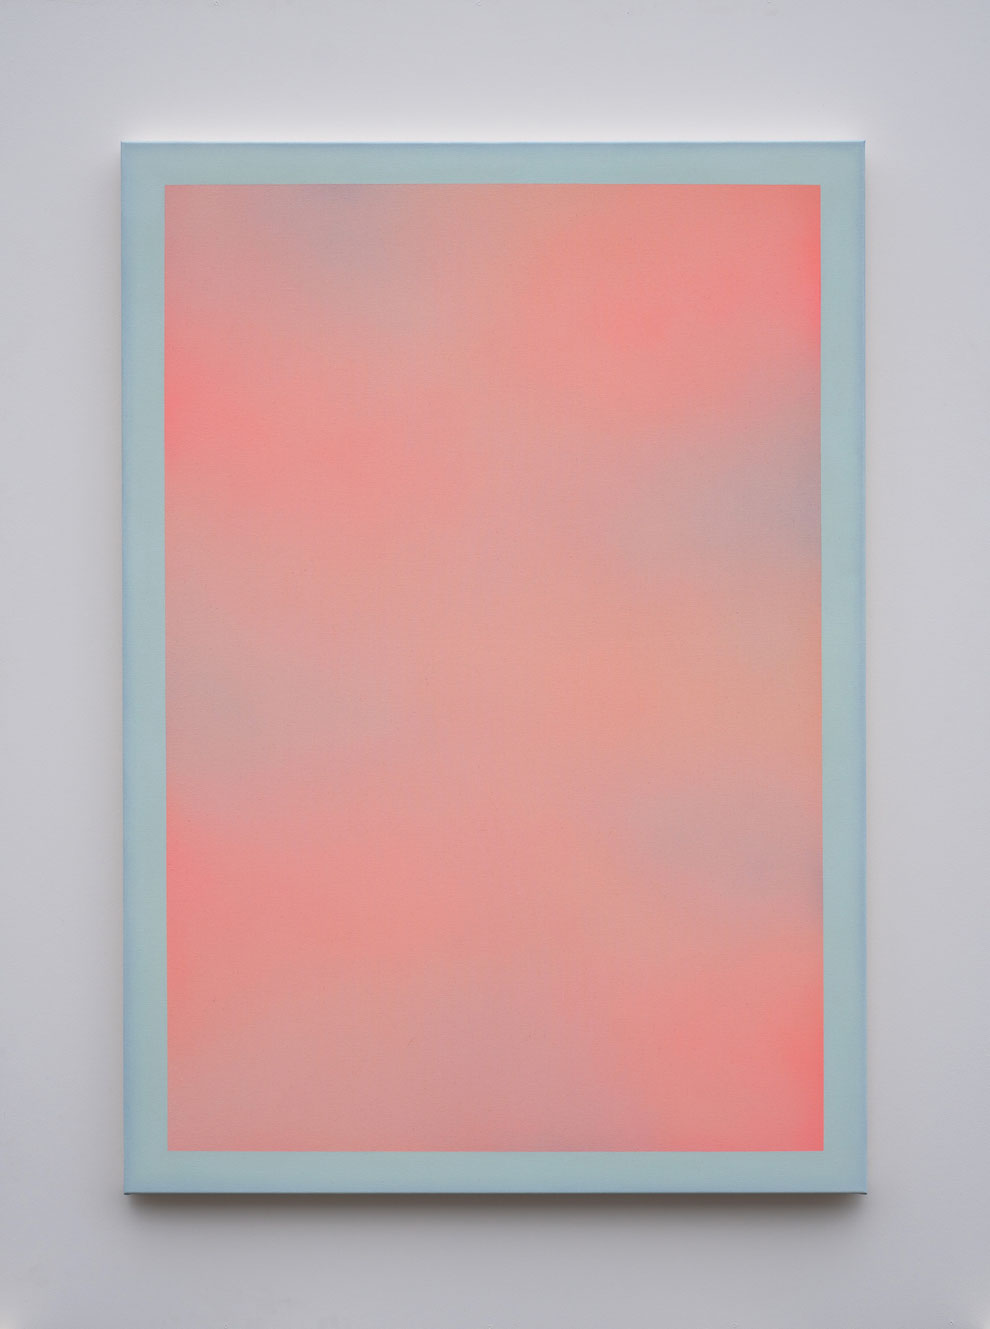 "Alina Birkner ""Untitled (Pink and Blue)"" 2021, 170x120 cm"